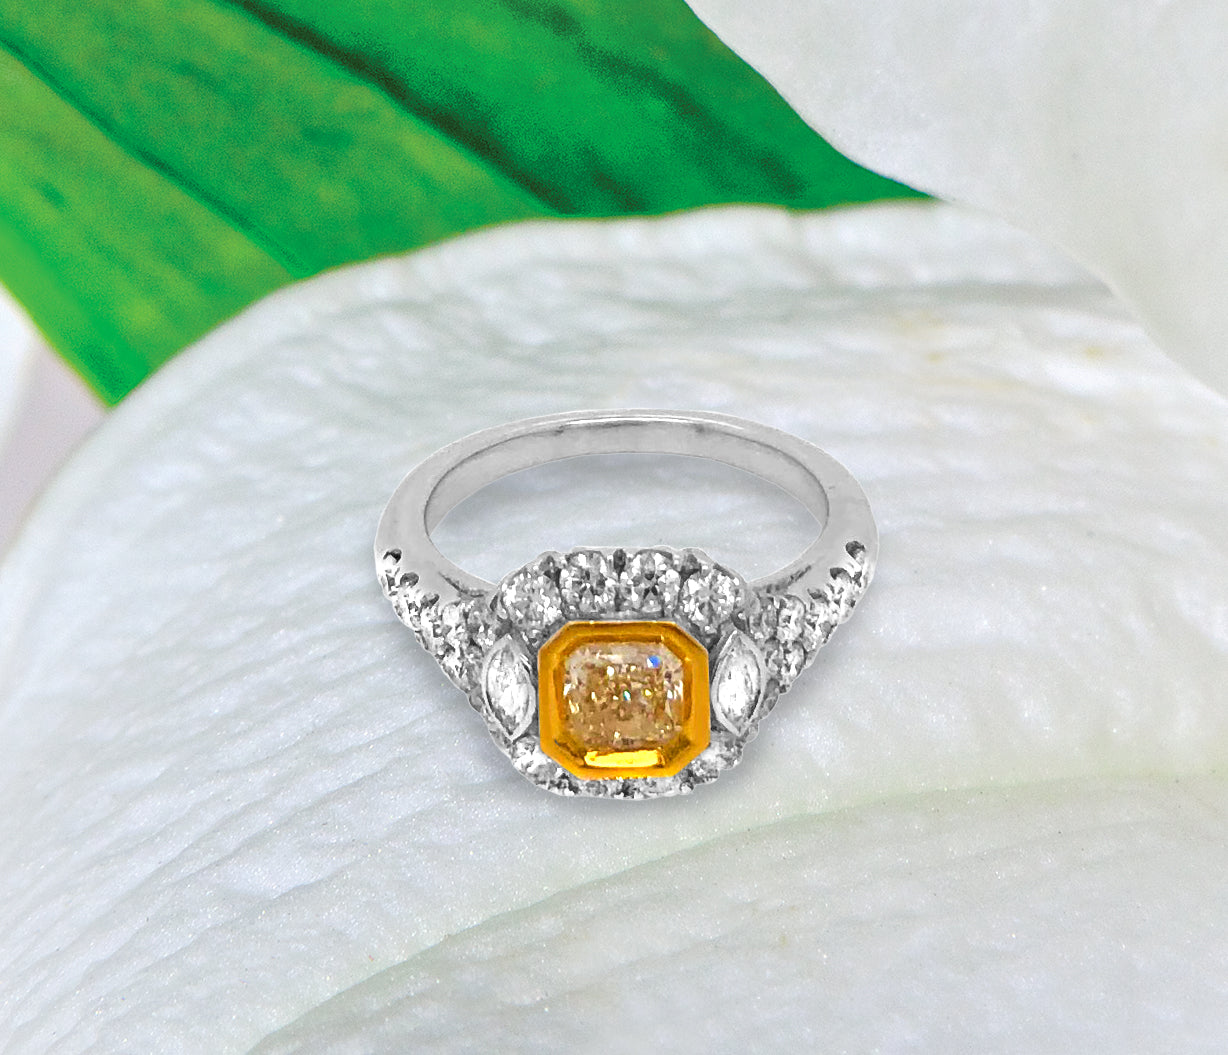 18K white gold diamond engagement ring featuring a 0.74 carat natural fancy yellow diamond bezel set in yellow gold, and marquis round diamonds weighing a total of 0.99 carats. Total diamond weight: 1.73ctw.